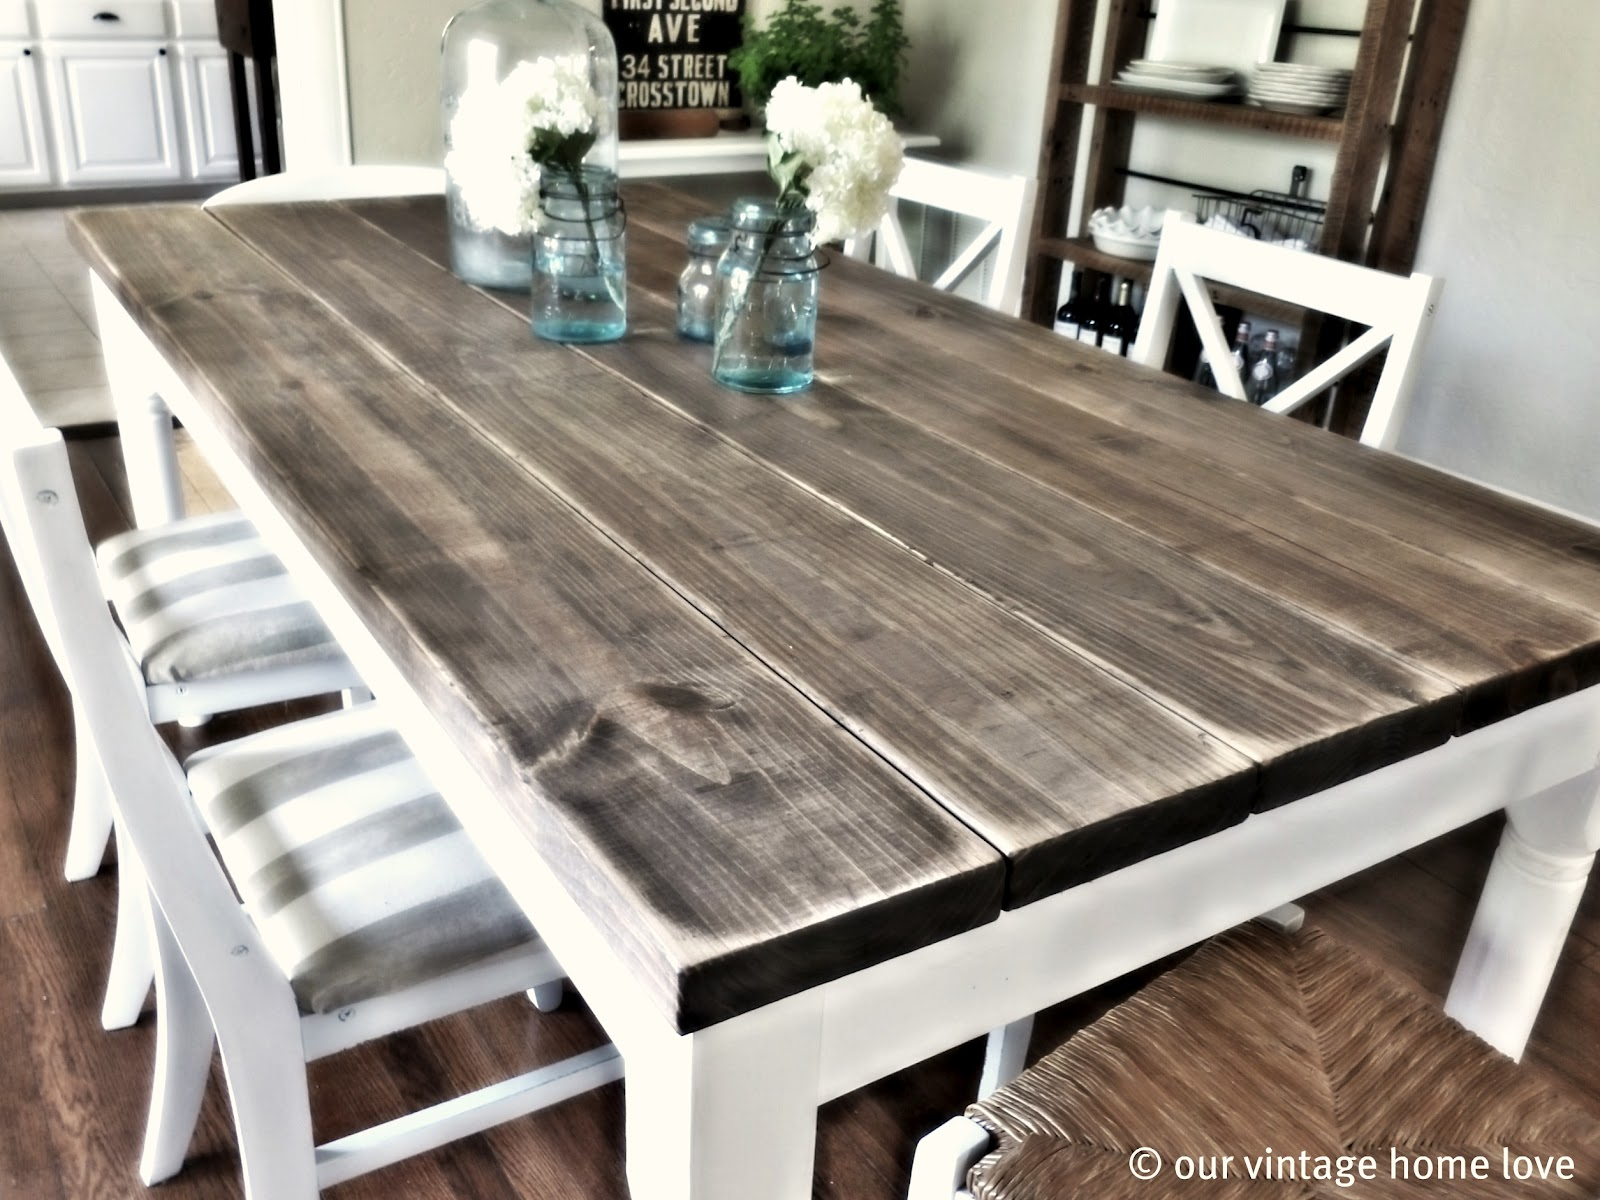 Google Image Result For Http1Bpblogspotcgowh8Vw_Iet Best Farmhouse Dining Room Table Plans Inspiration Design